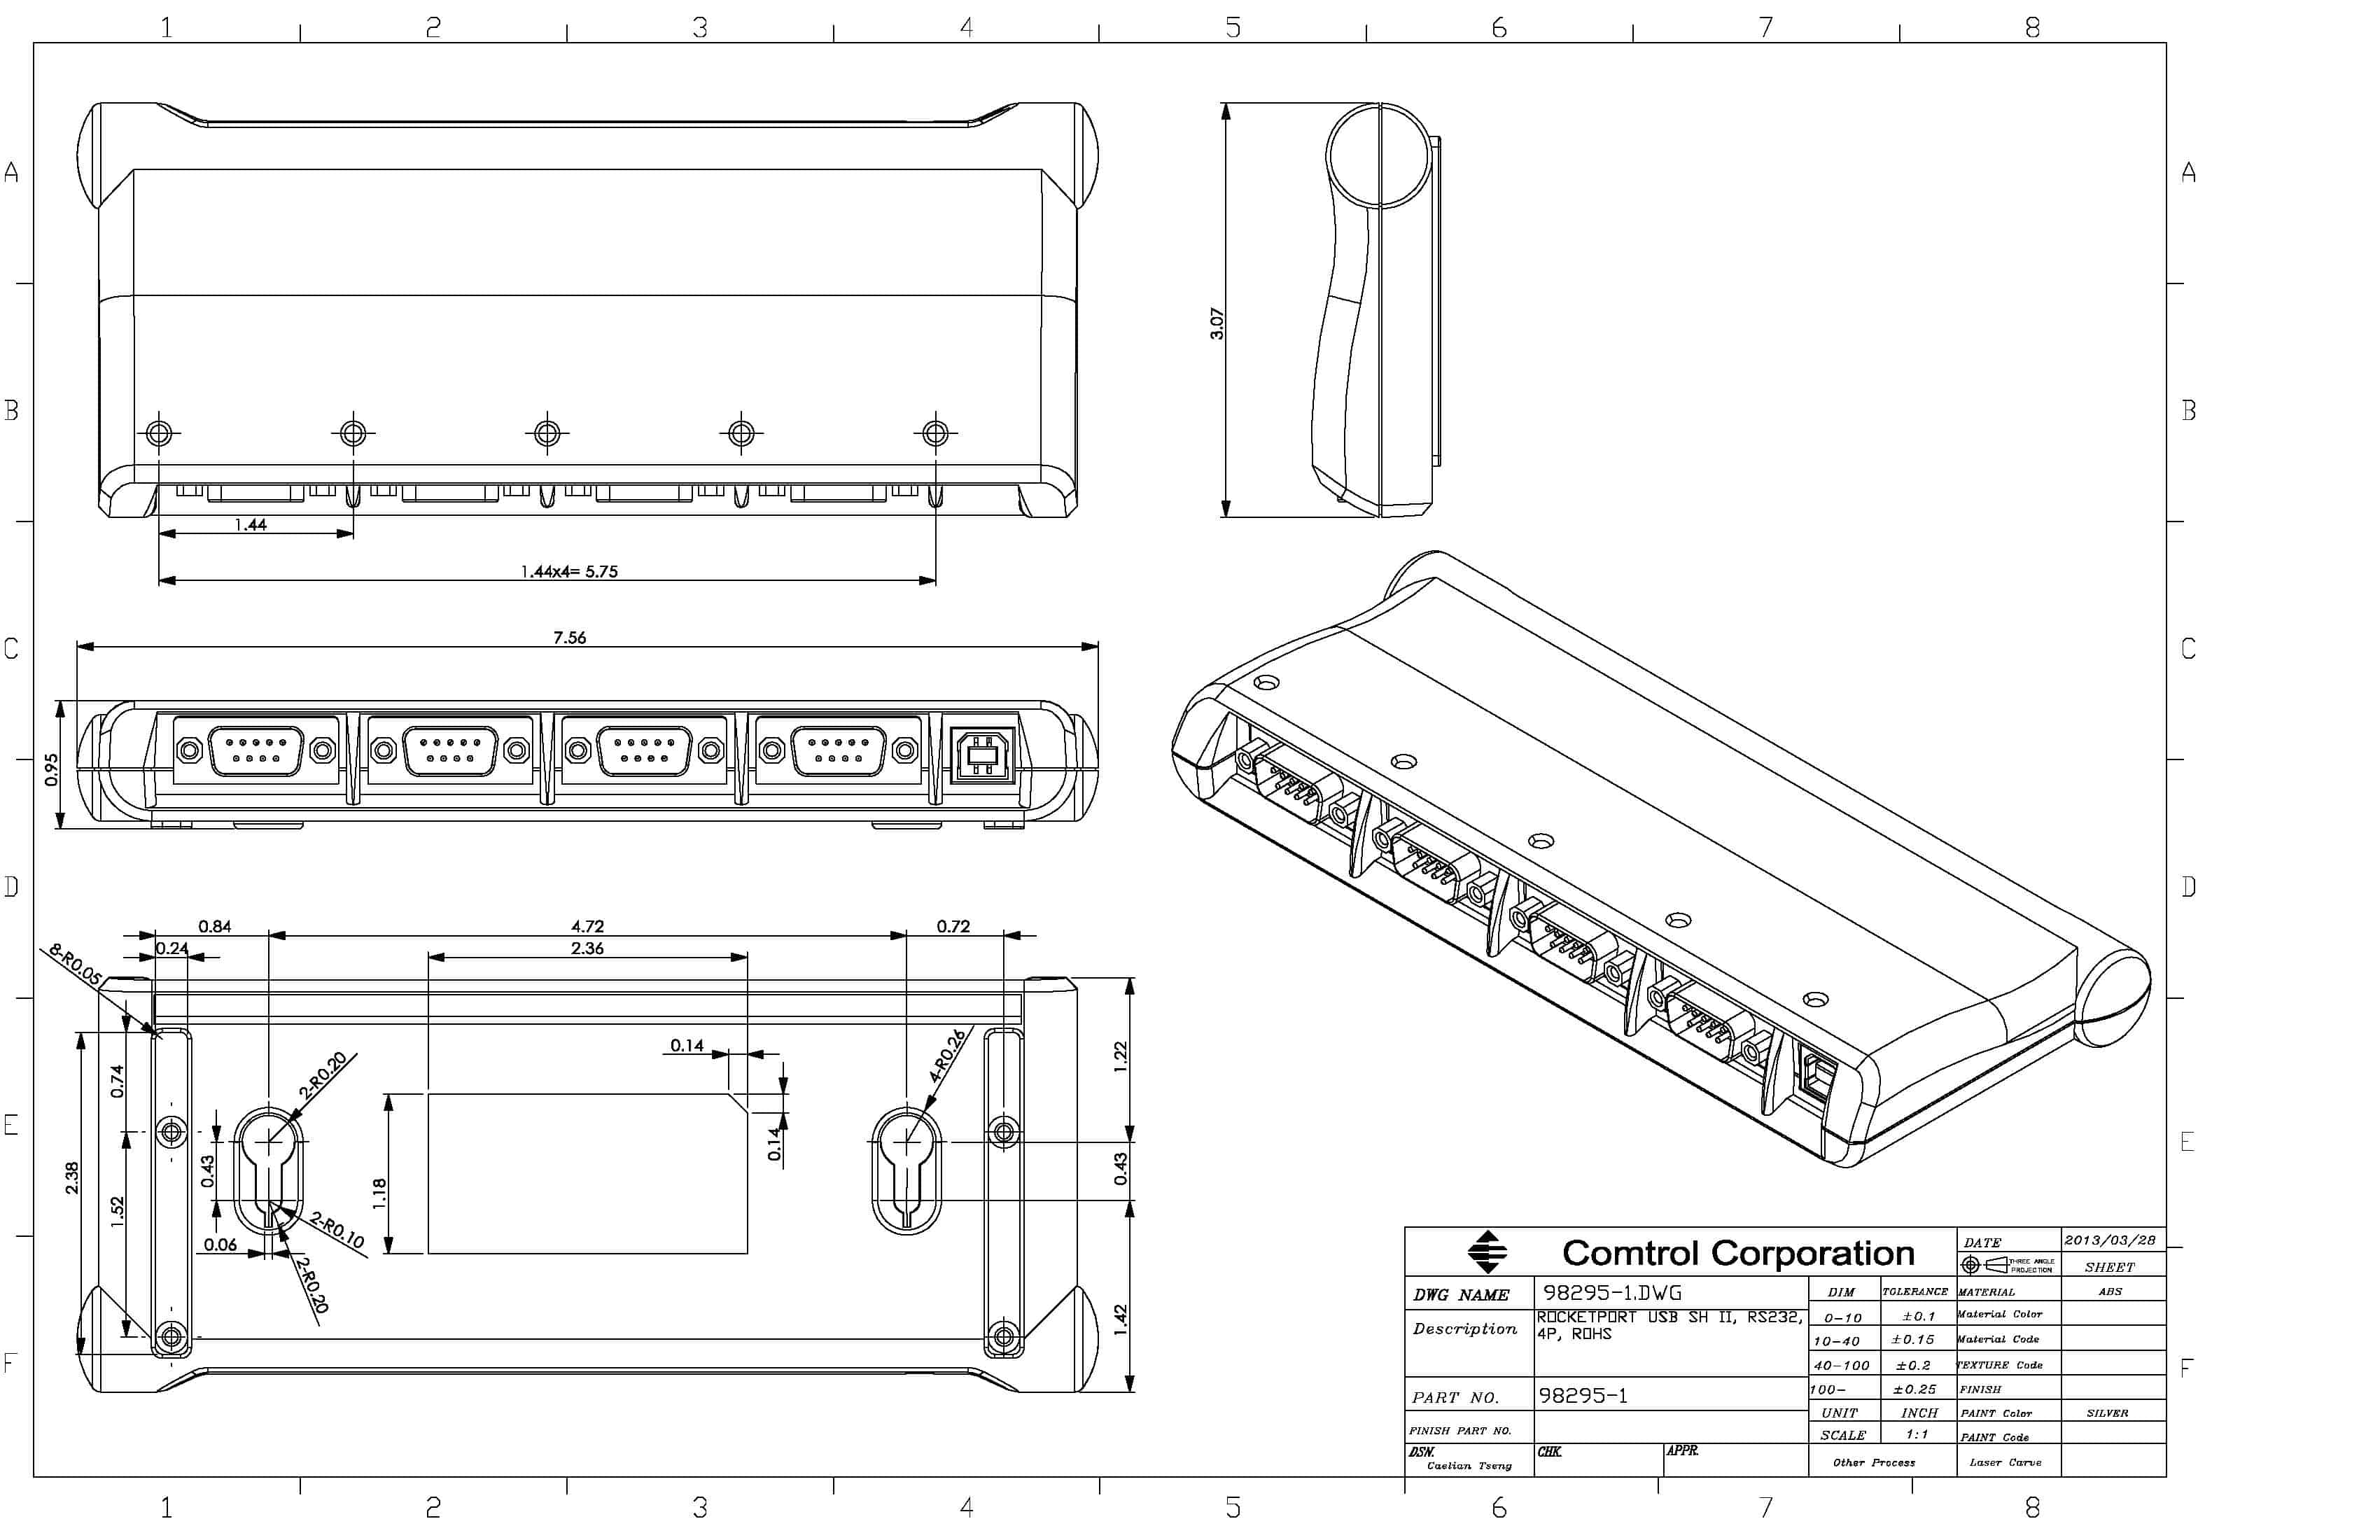 Rocketport Usb Serial Hub 4 Port Hubs Comtrol In Addition Cable Pinout On To Schematic View Engineering Drawing Includes Ii Device